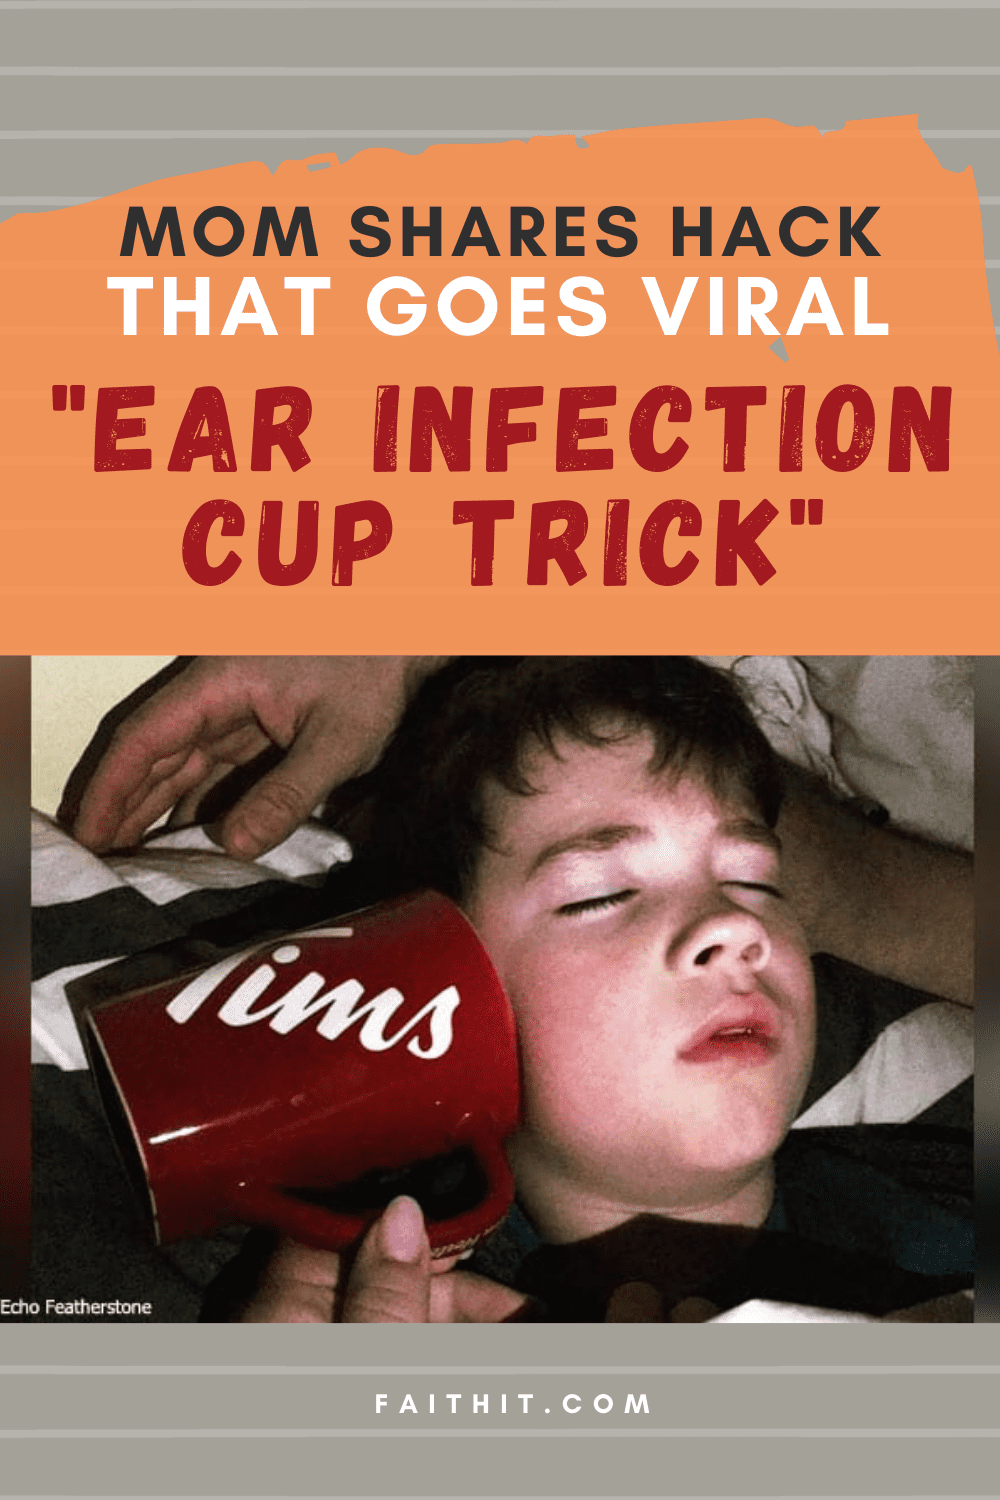 ear infection cup trick